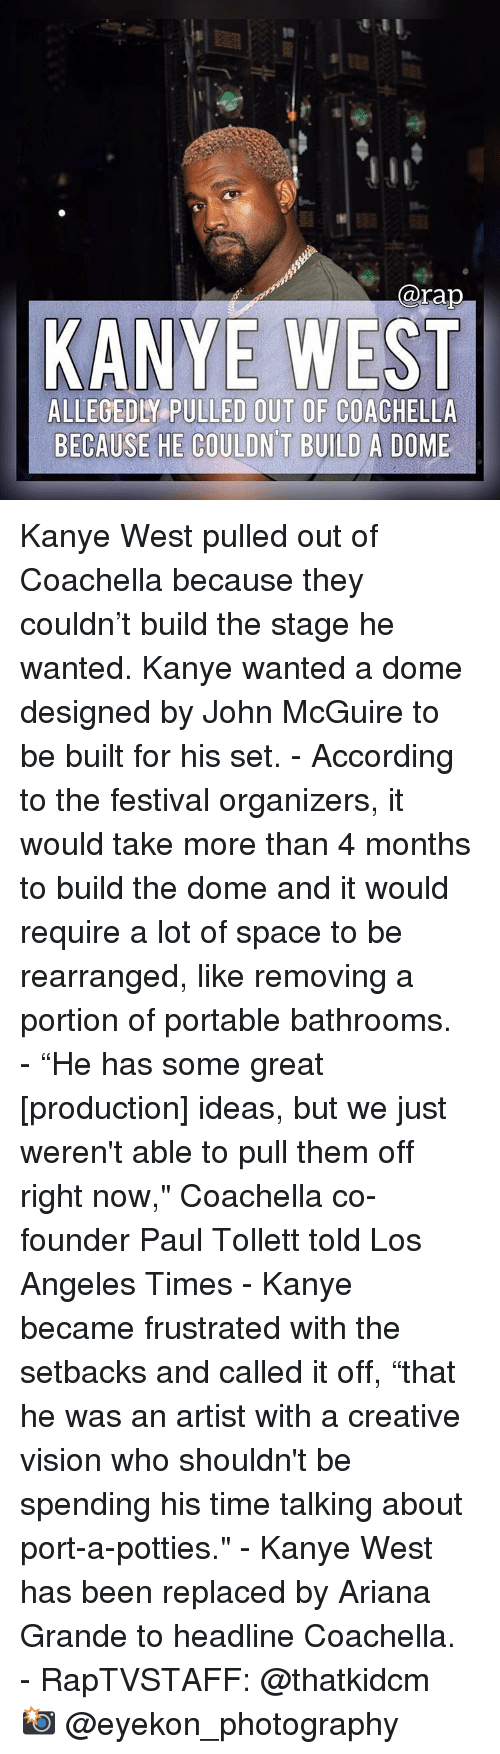 """portable: @rap  KANYE WEST  ALLEGEDLY PULLED OUT OF COACHELLA  BECAUSE HE COULDN T BUILD A DOME Kanye West pulled out of Coachella because they couldn't build the stage he wanted. Kanye wanted a dome designed by John McGuire to be built for his set. - According to the festival organizers, it would take more than 4 months to build the dome and it would require a lot of space to be rearranged, like removing a portion of portable bathrooms. - """"He has some great [production] ideas, but we just weren't able to pull them off right now,"""" Coachella co-founder Paul Tollett told Los Angeles Times - Kanye became frustrated with the setbacks and called it off, """"that he was an artist with a creative vision who shouldn't be spending his time talking about port-a-potties."""" - Kanye West has been replaced by Ariana Grande to headline Coachella. - RapTVSTAFF: @thatkidcm 📸 @eyekon_photography"""